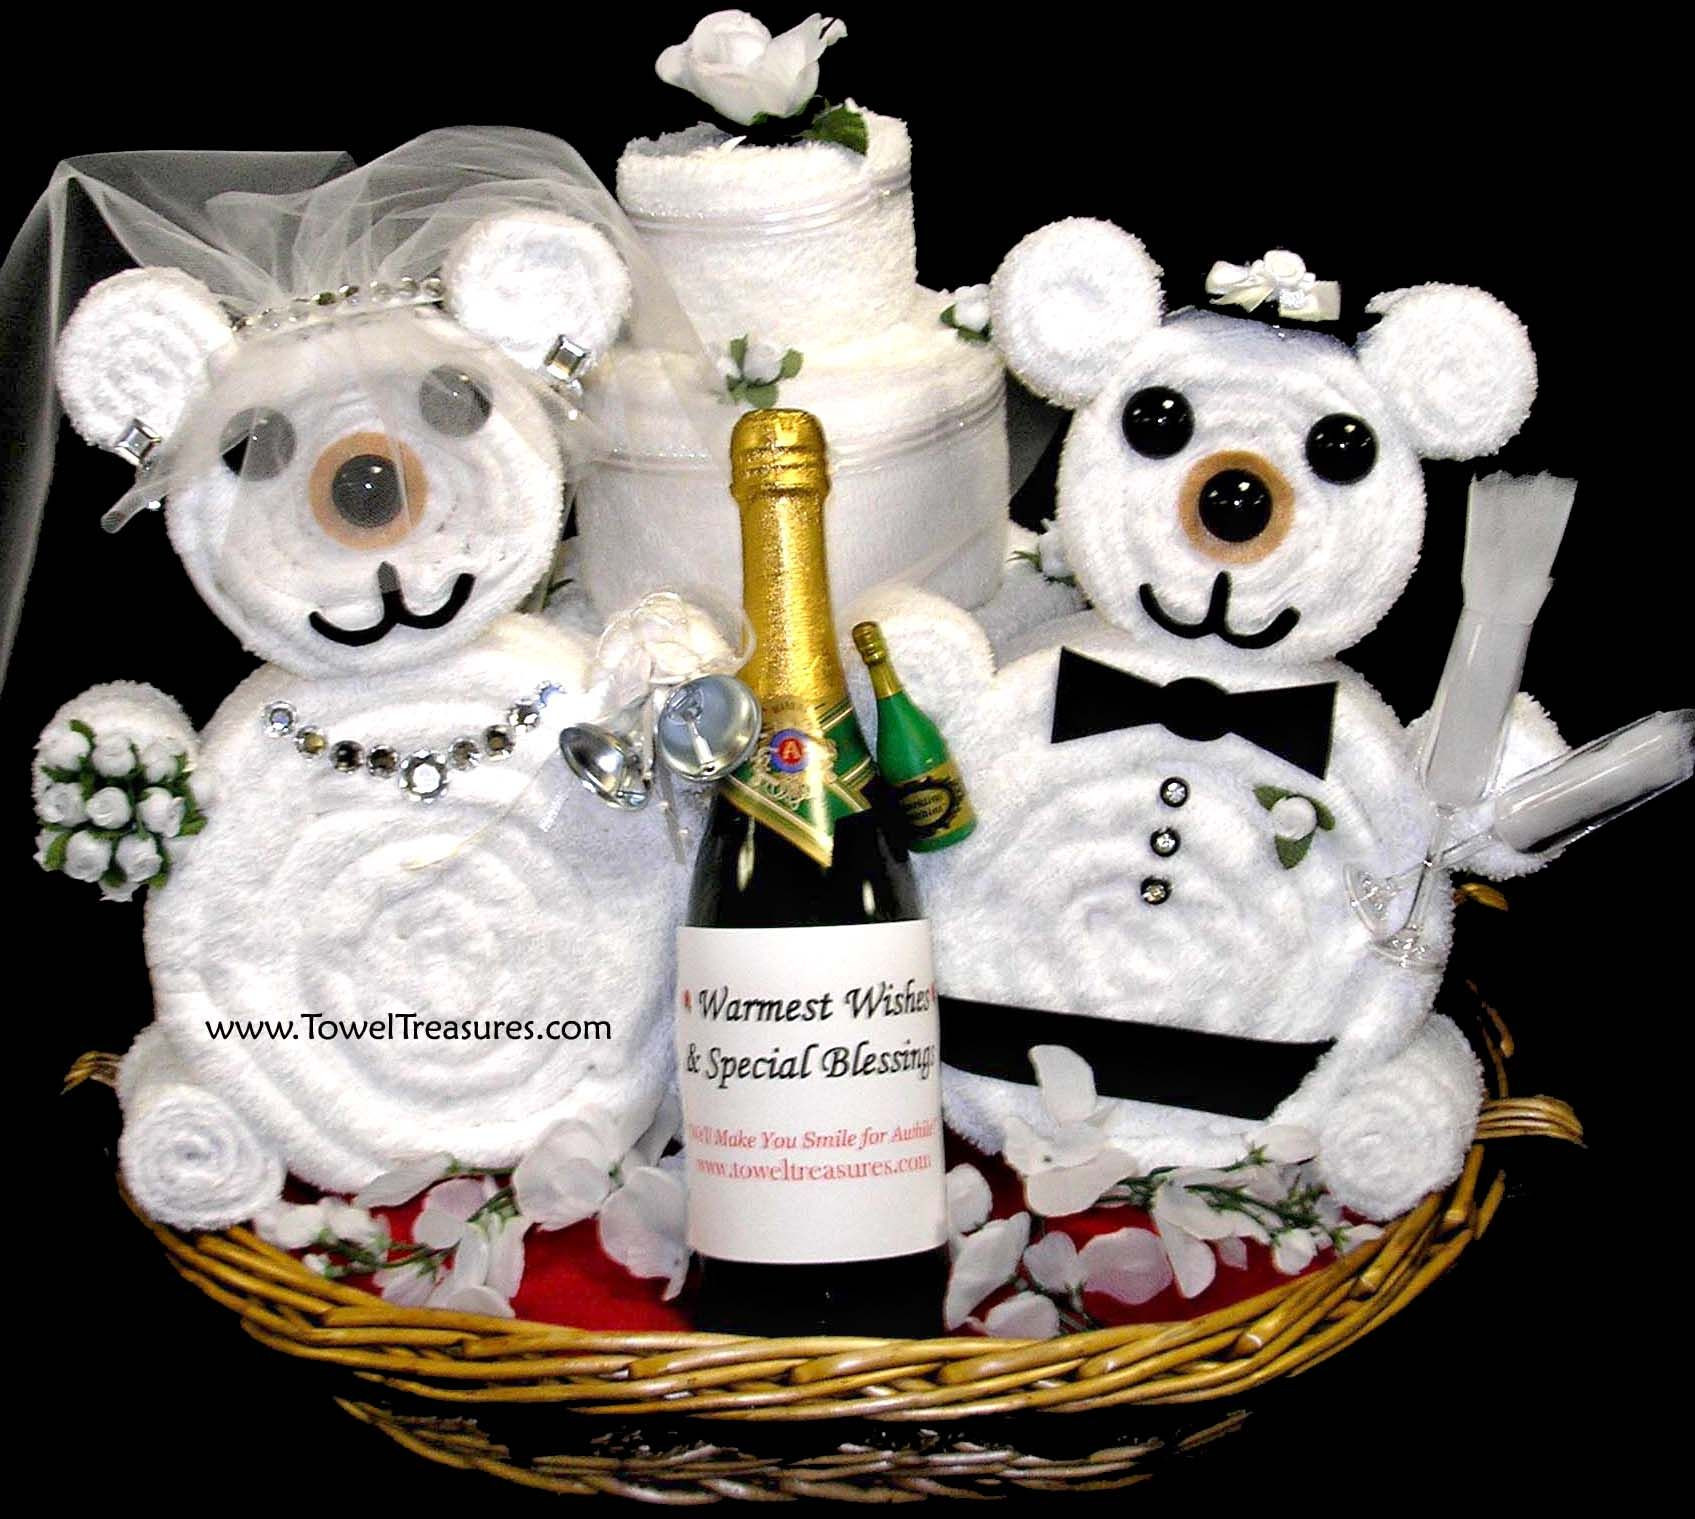 Best ideas about Wedding Gift Ideas For Bride . Save or Pin wedding t baskets ideas Now.